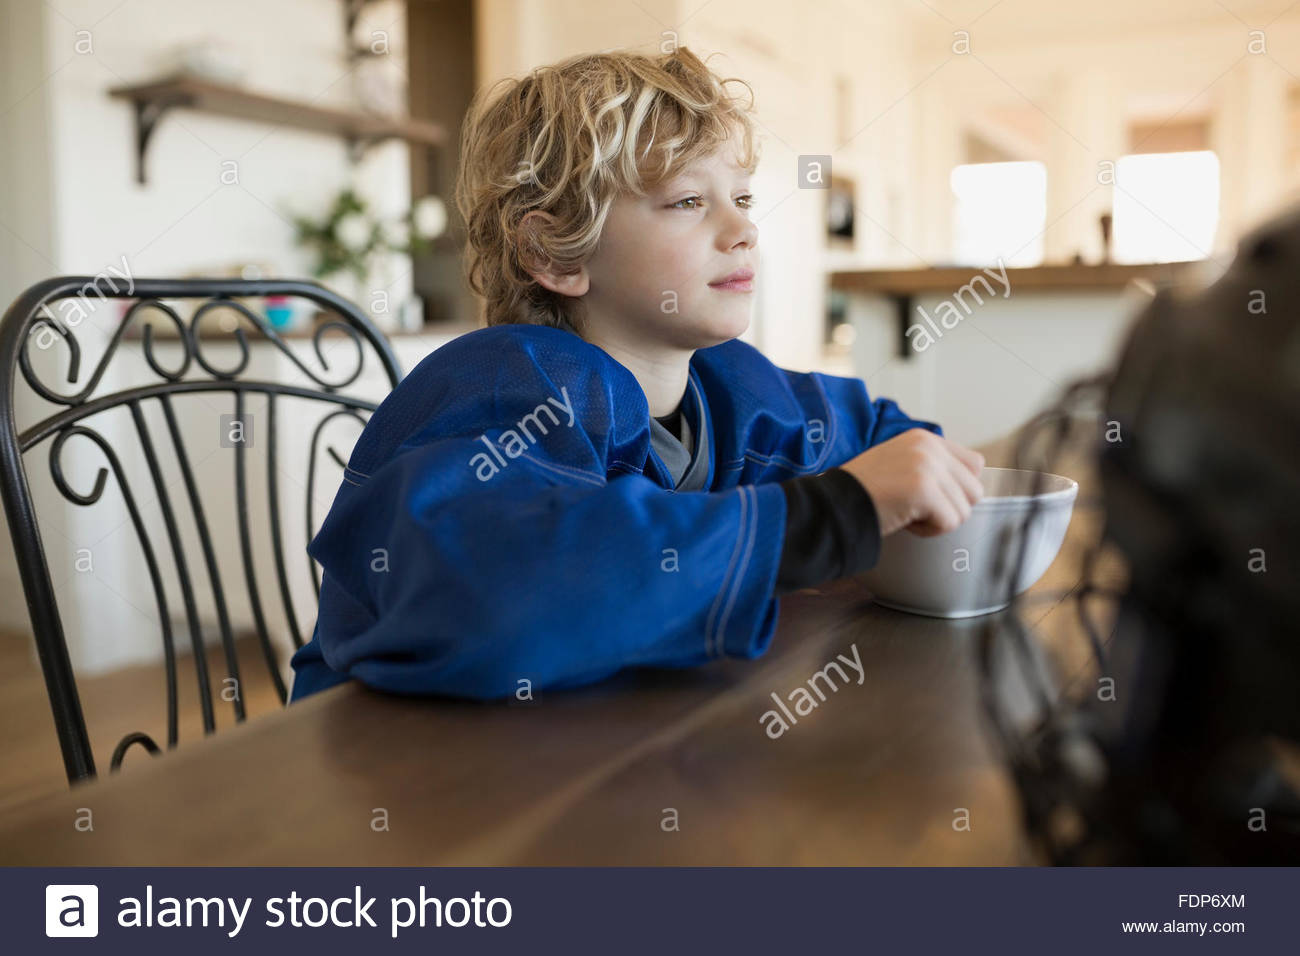 Pensive boy eating cereal at table - Stock Image